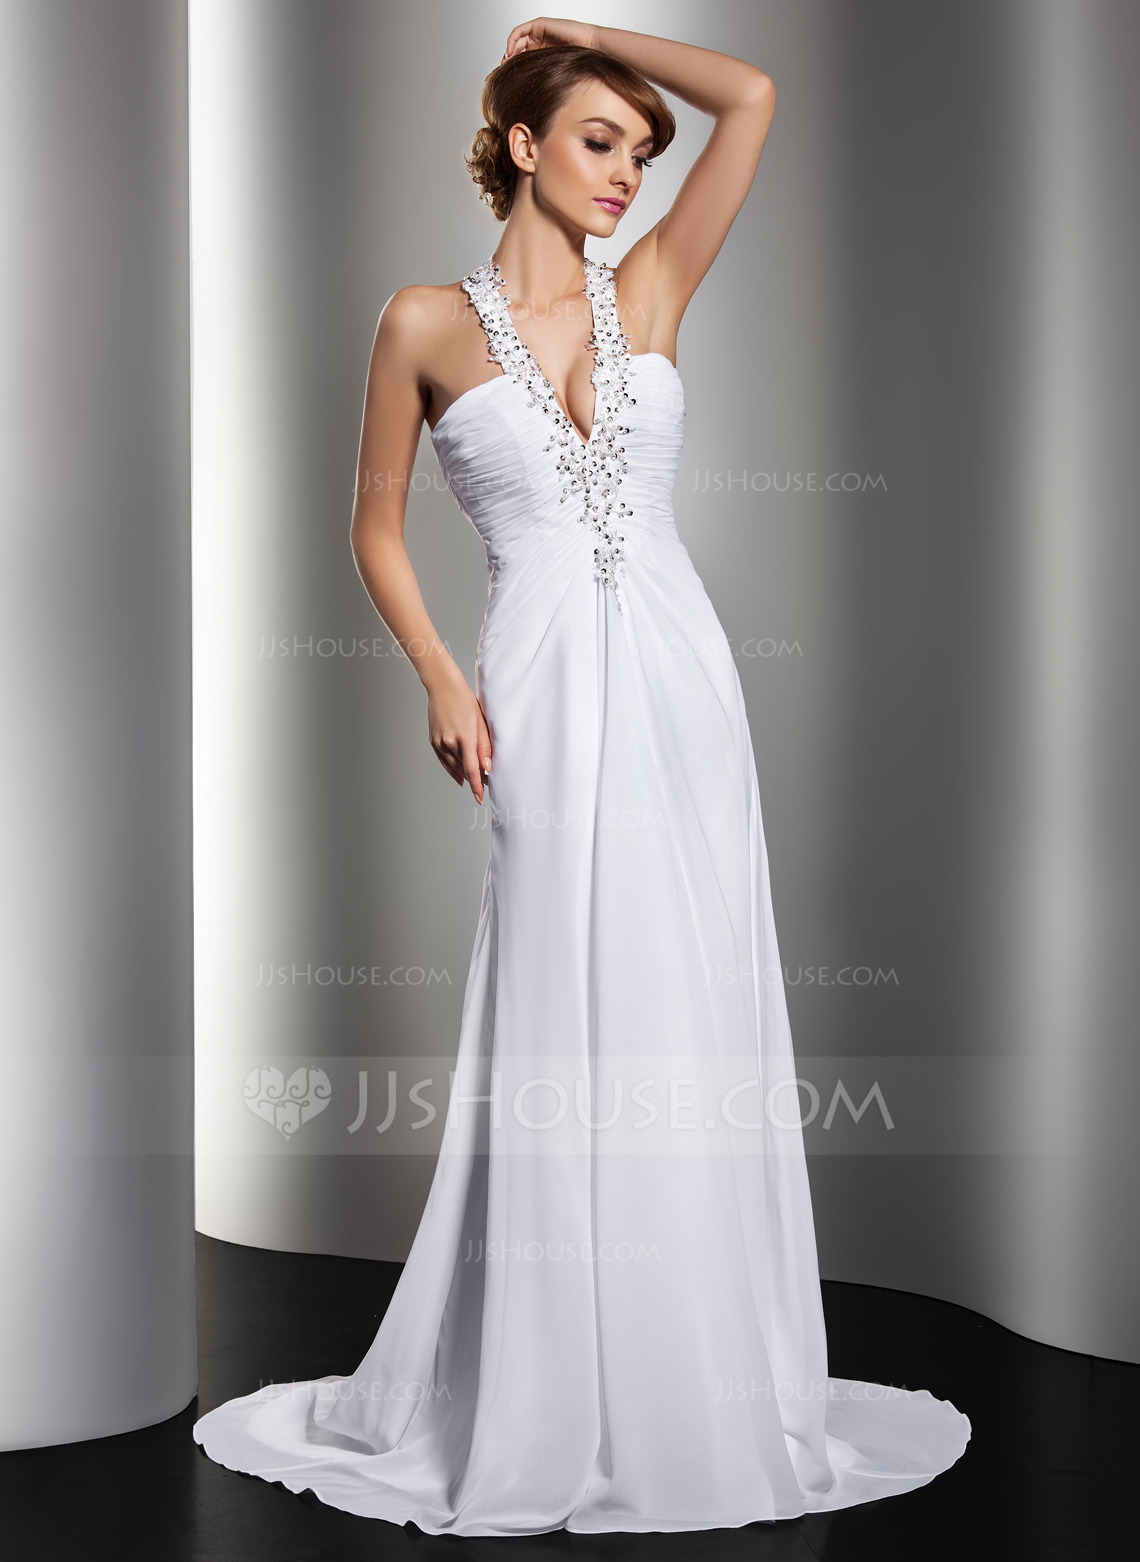 A Line Princess Halter Sweep Train Chiffon Wedding Dress With Ruffle Beading Appliques Lace Sequins g white halter wedding dress Home Wedding Dresses Loading zoom